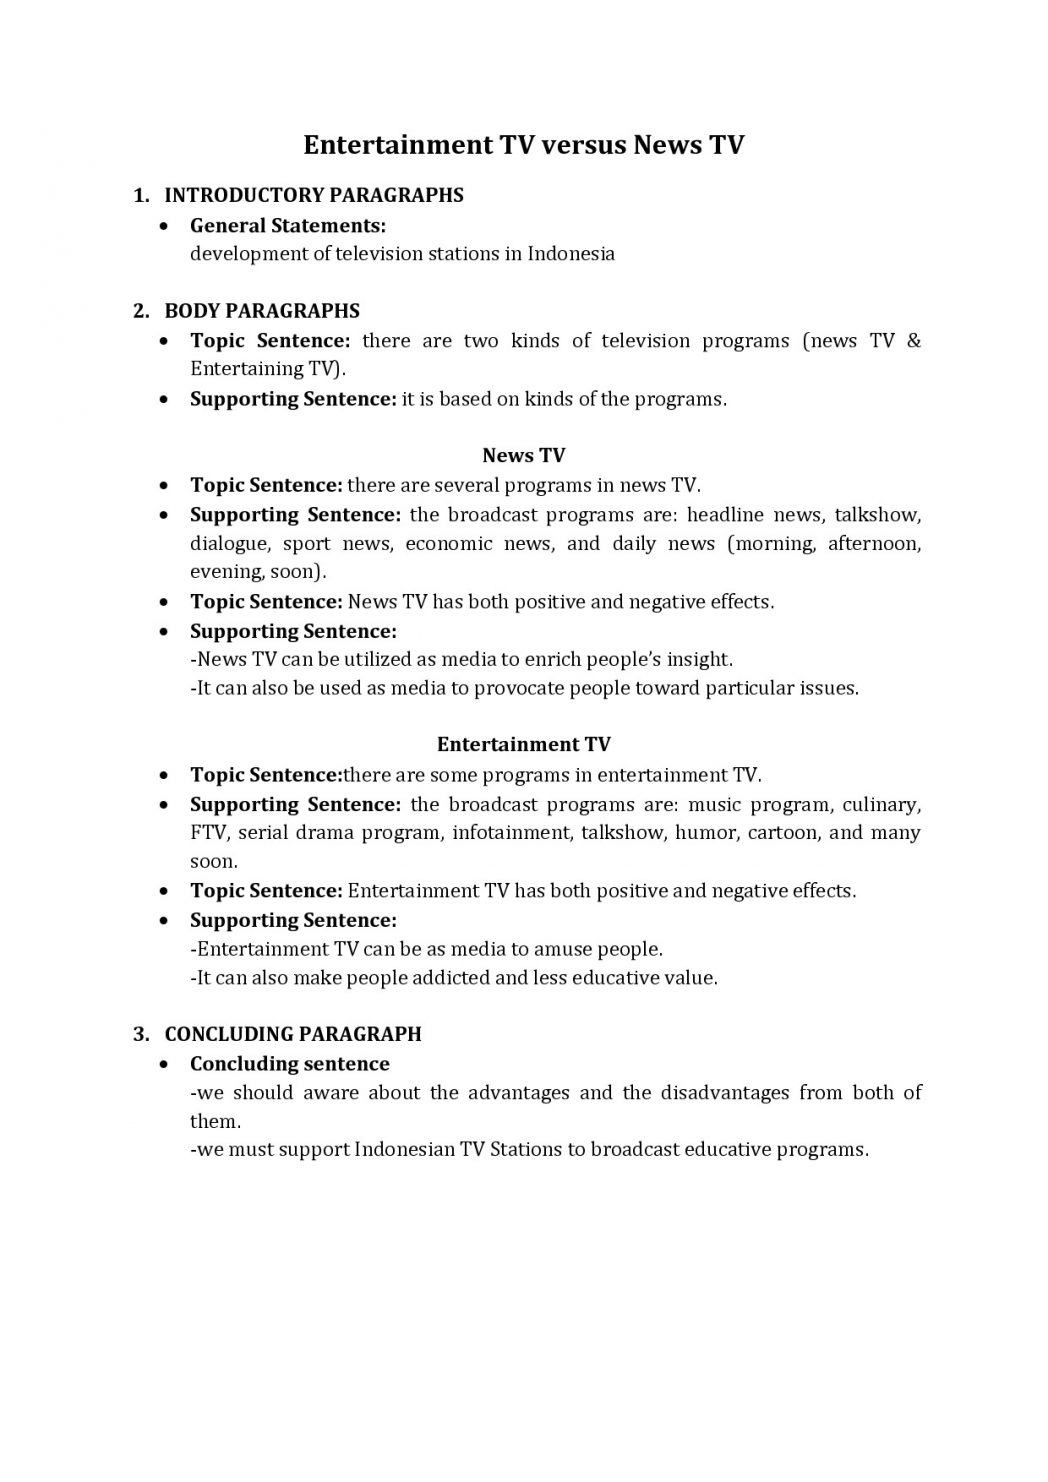 006 Research Paper Uncategorizeds Of An Essay Outline Economics How Template On Subject Economic Challenges20tan20 Incredible Example Sample Model Full